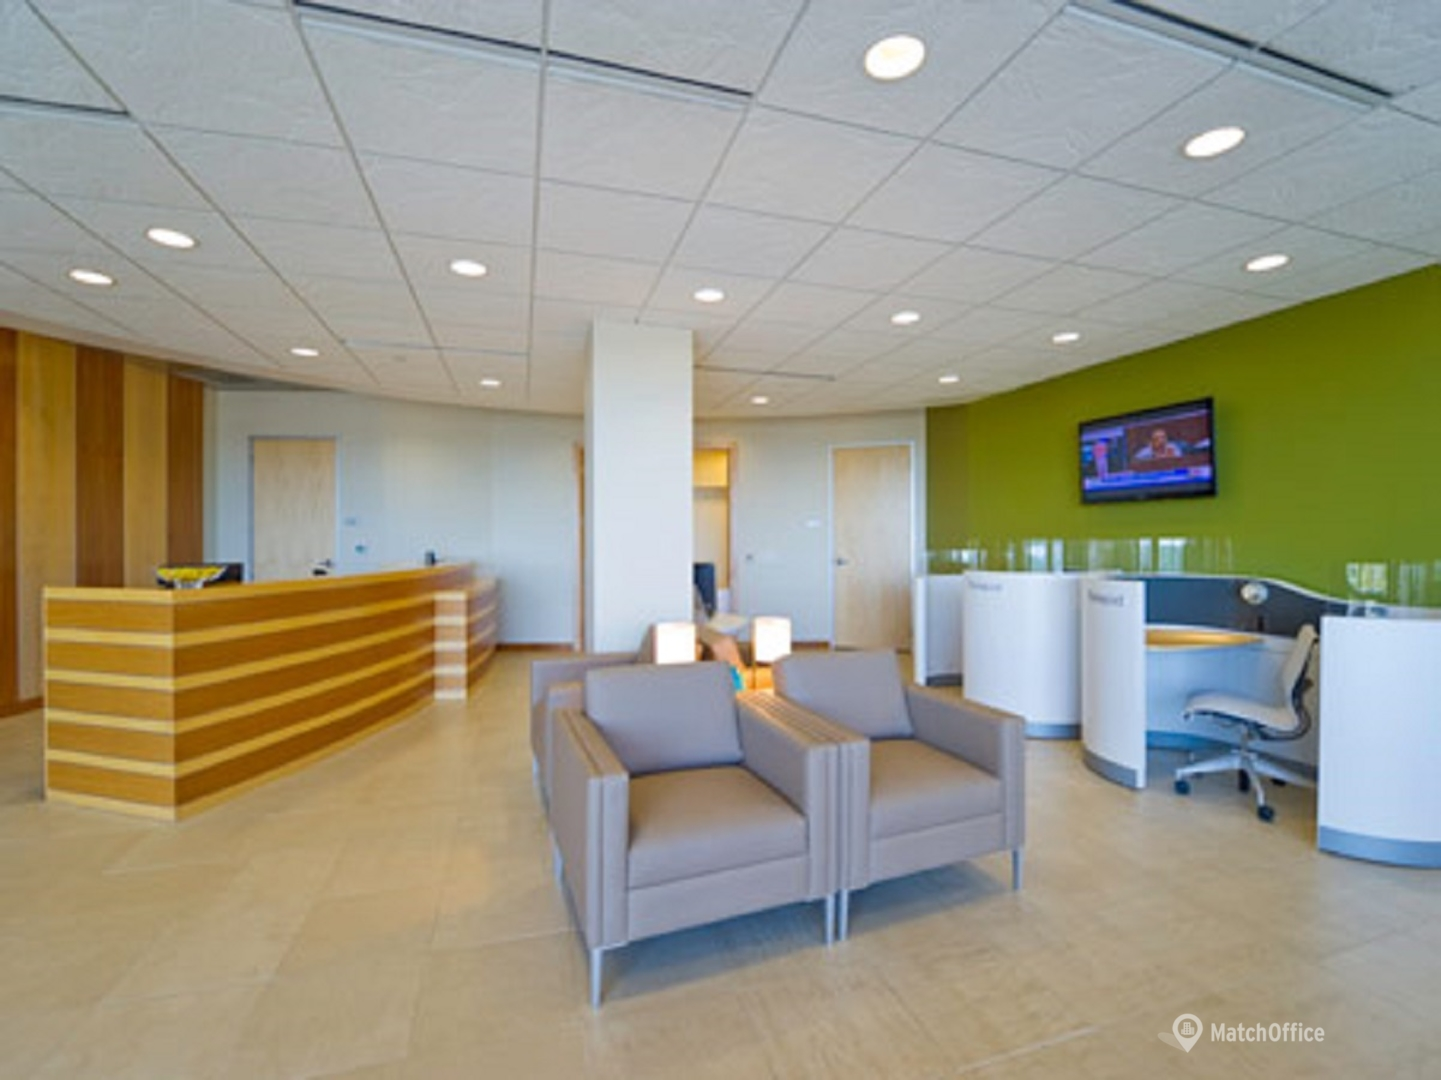 Lease virtual business address in Middleton, WI 2810